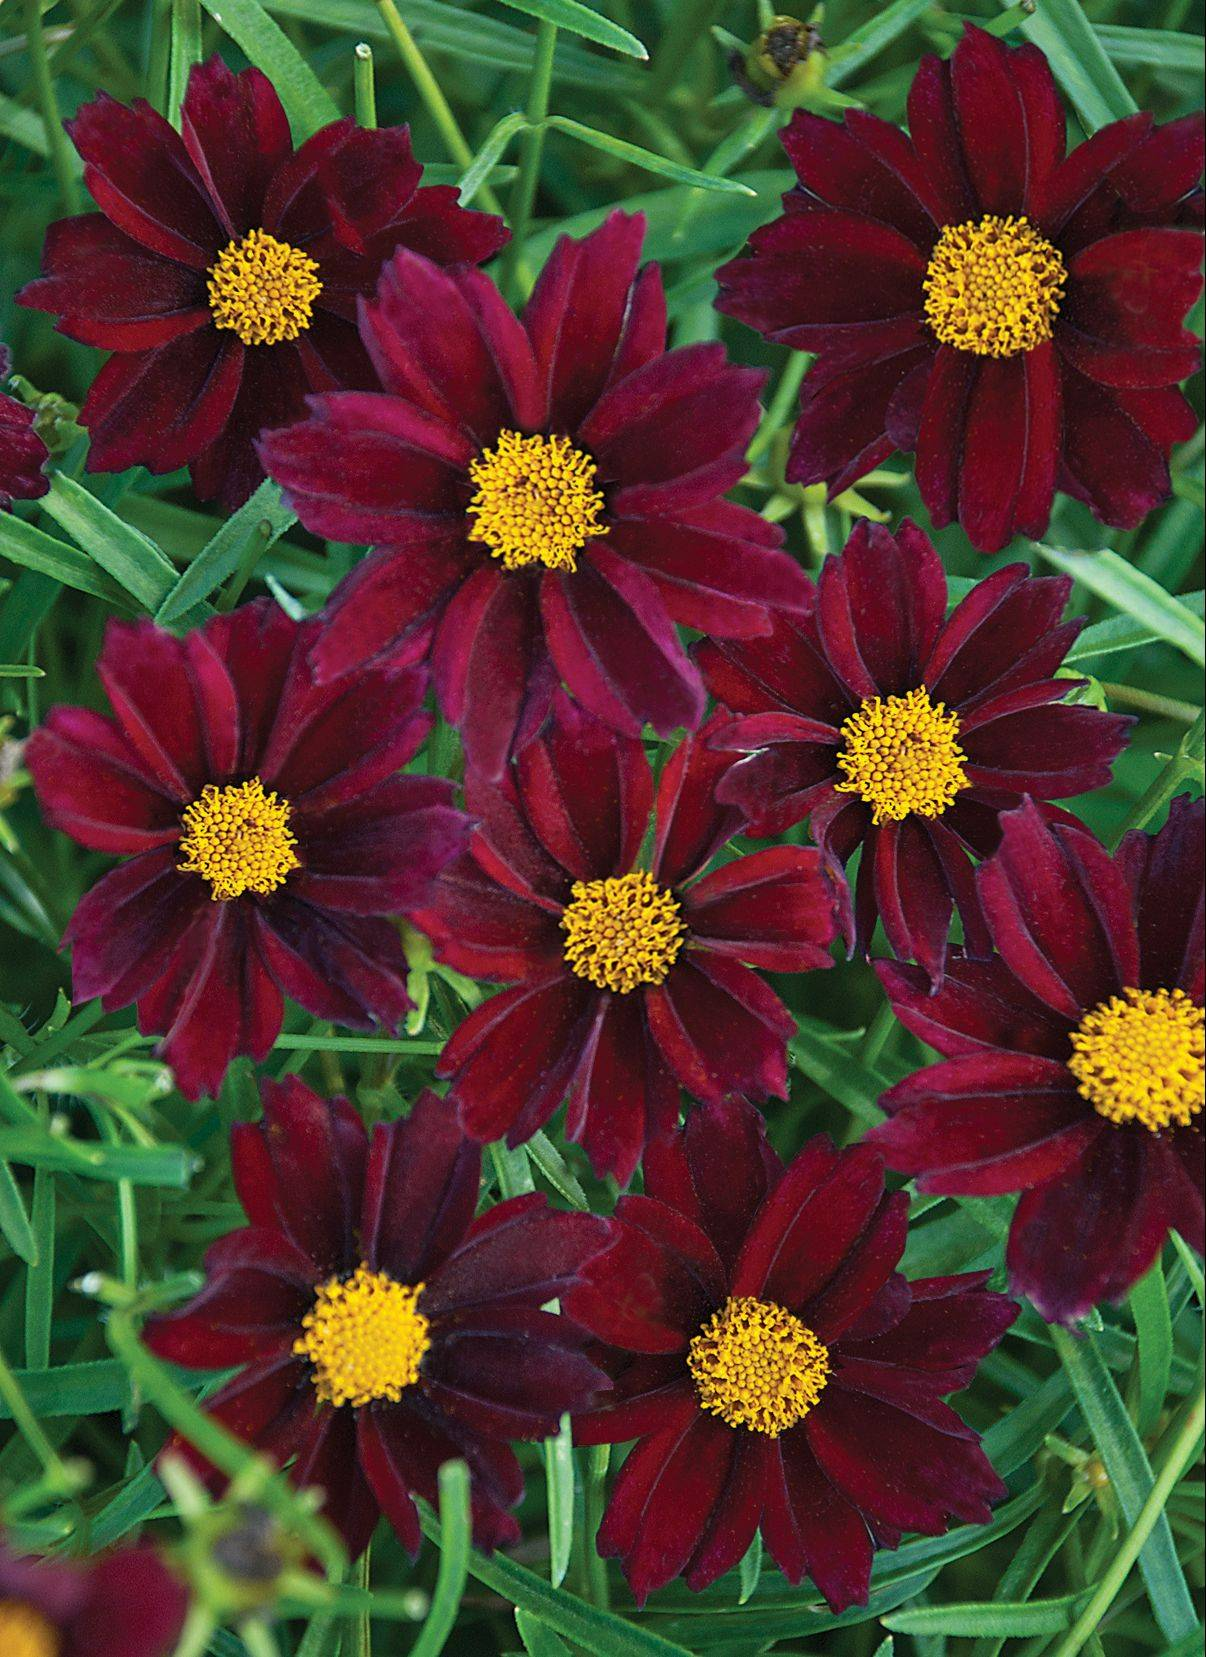 Mercury Rising is the first red tickseed offered by Walters Gardens in Michigan that would survive Chicago-area winters. Butterflies and honeybees are attracted to the 2-inch wine-colored blooms. It reblooms with no deadheading necessary.